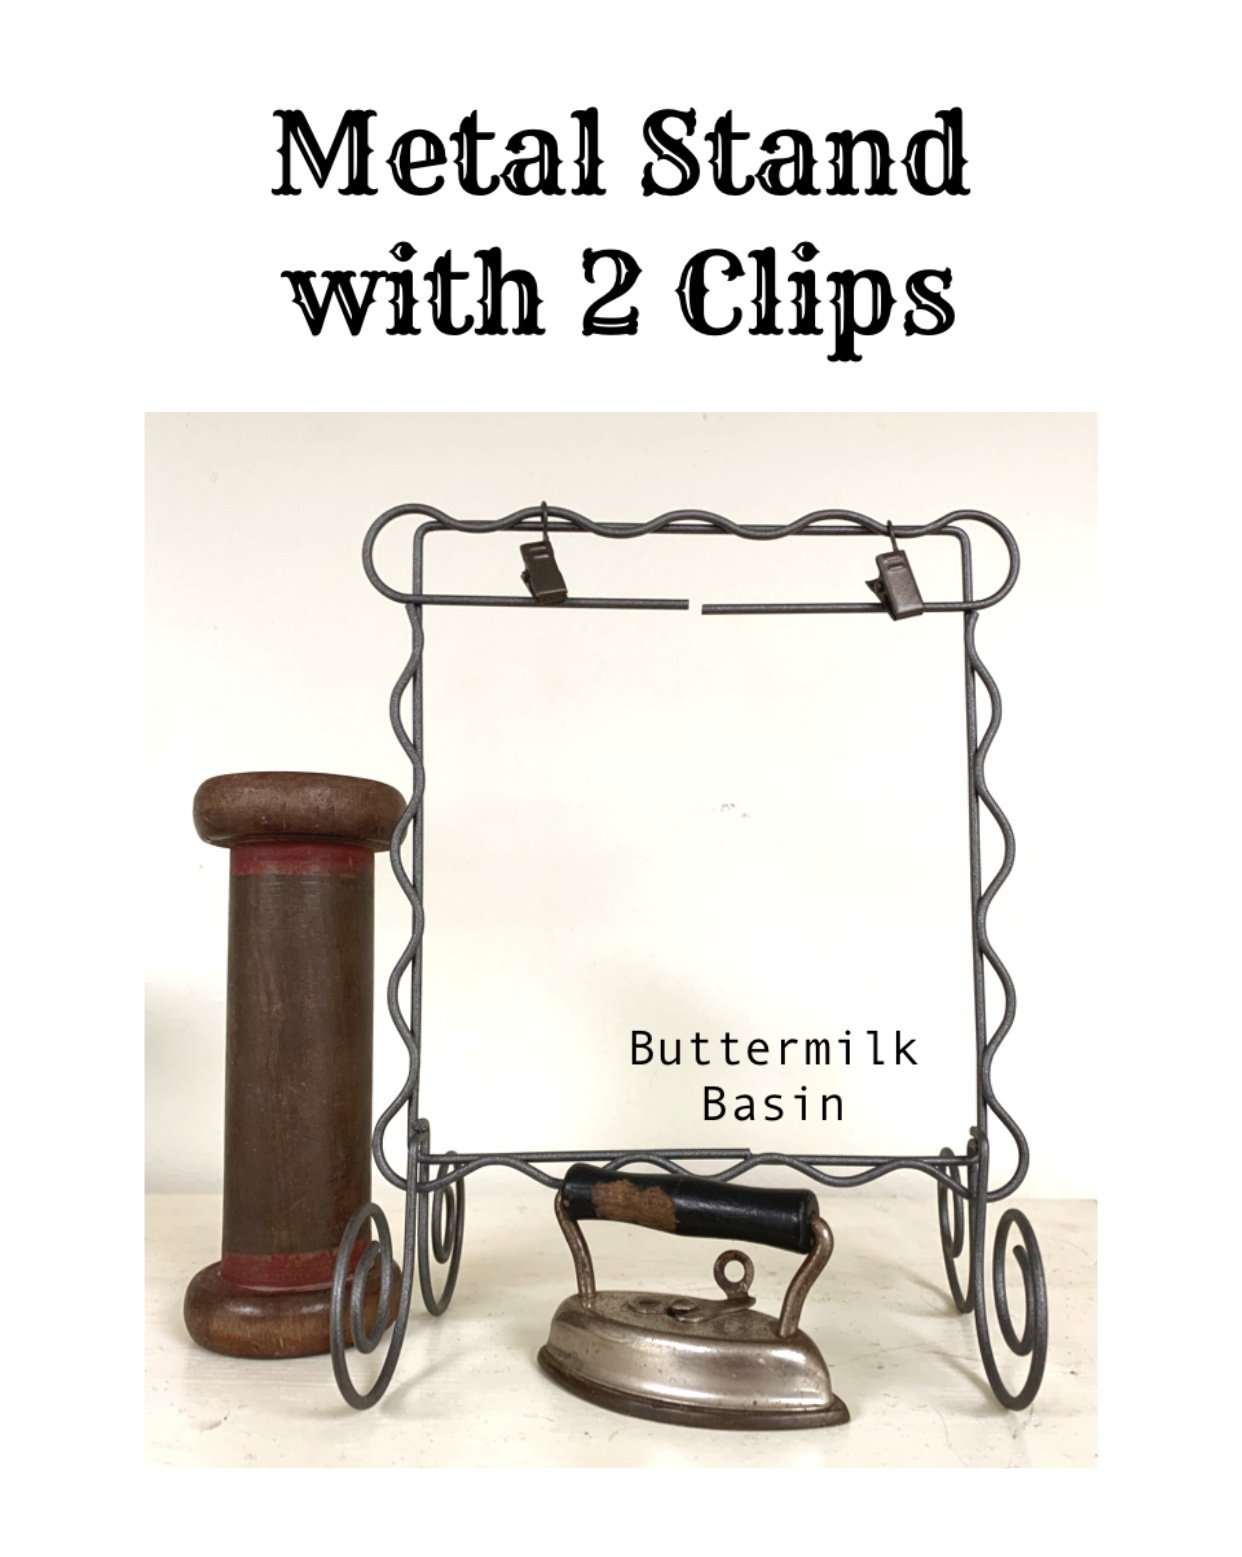 Metal Stand with 2 Clips